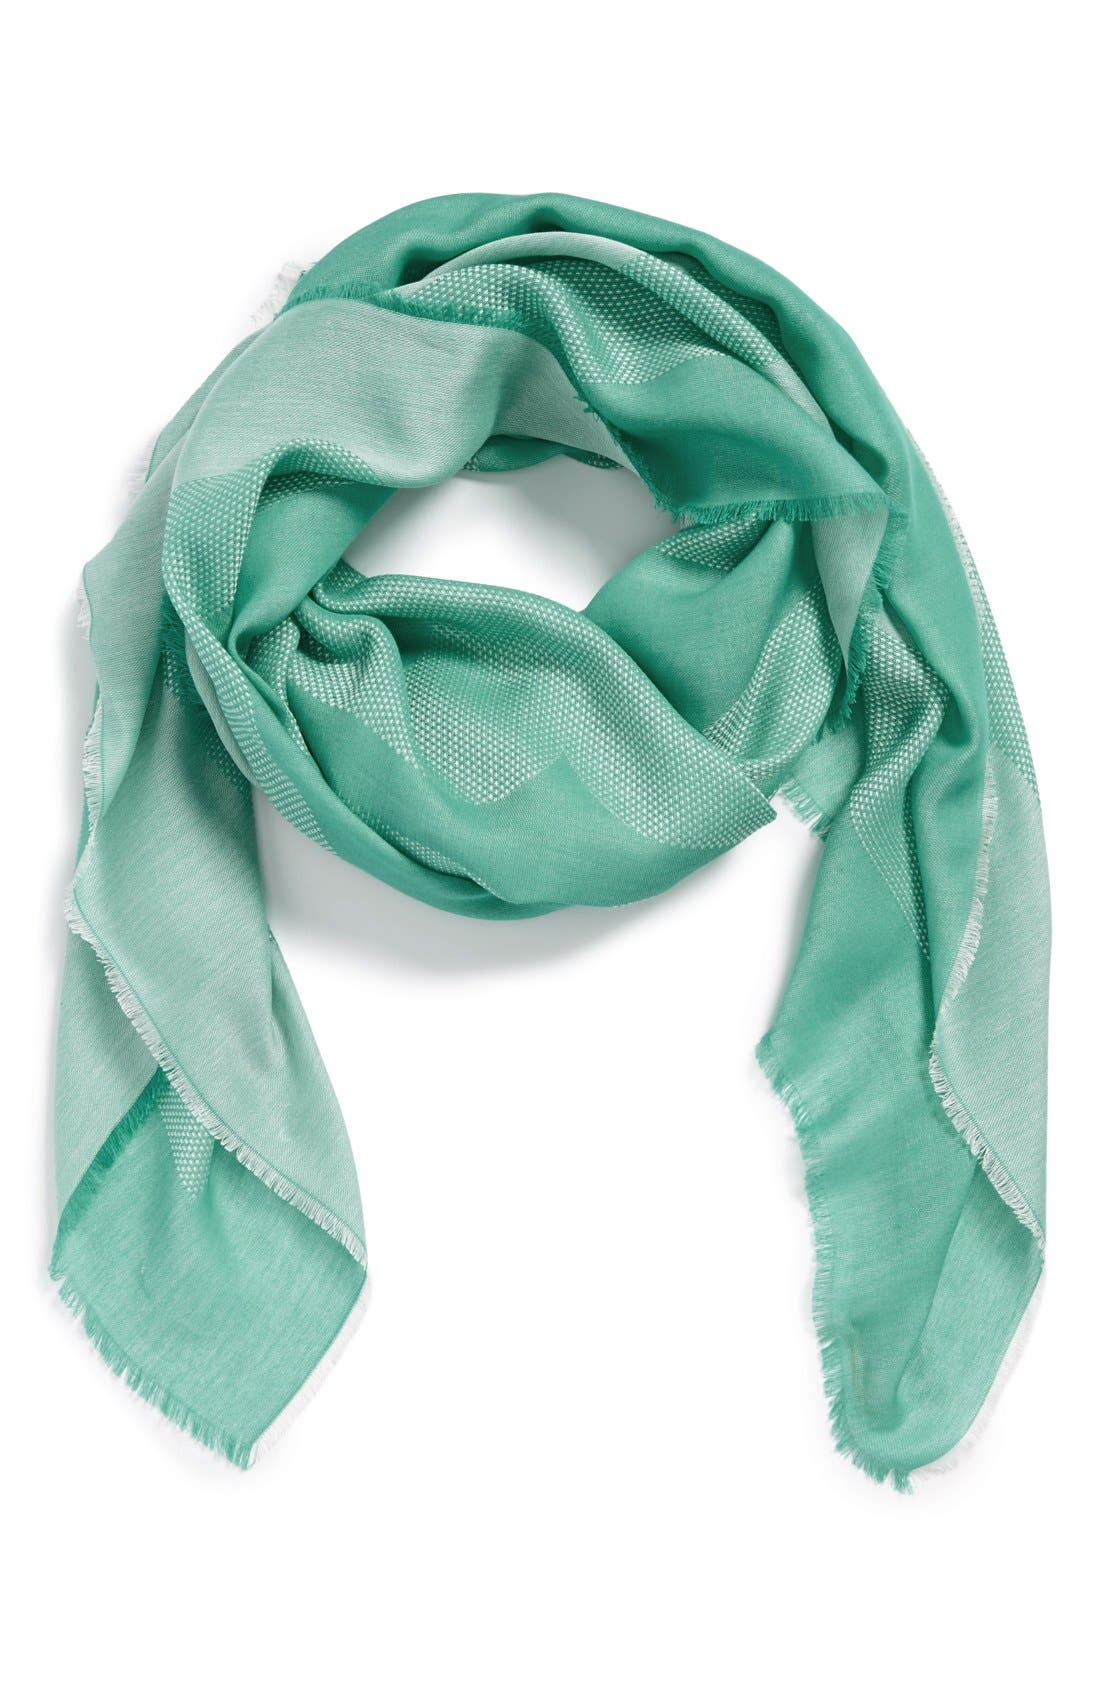 Alternate Image 1 Selected - Tory Burch Woven Logo Scarf